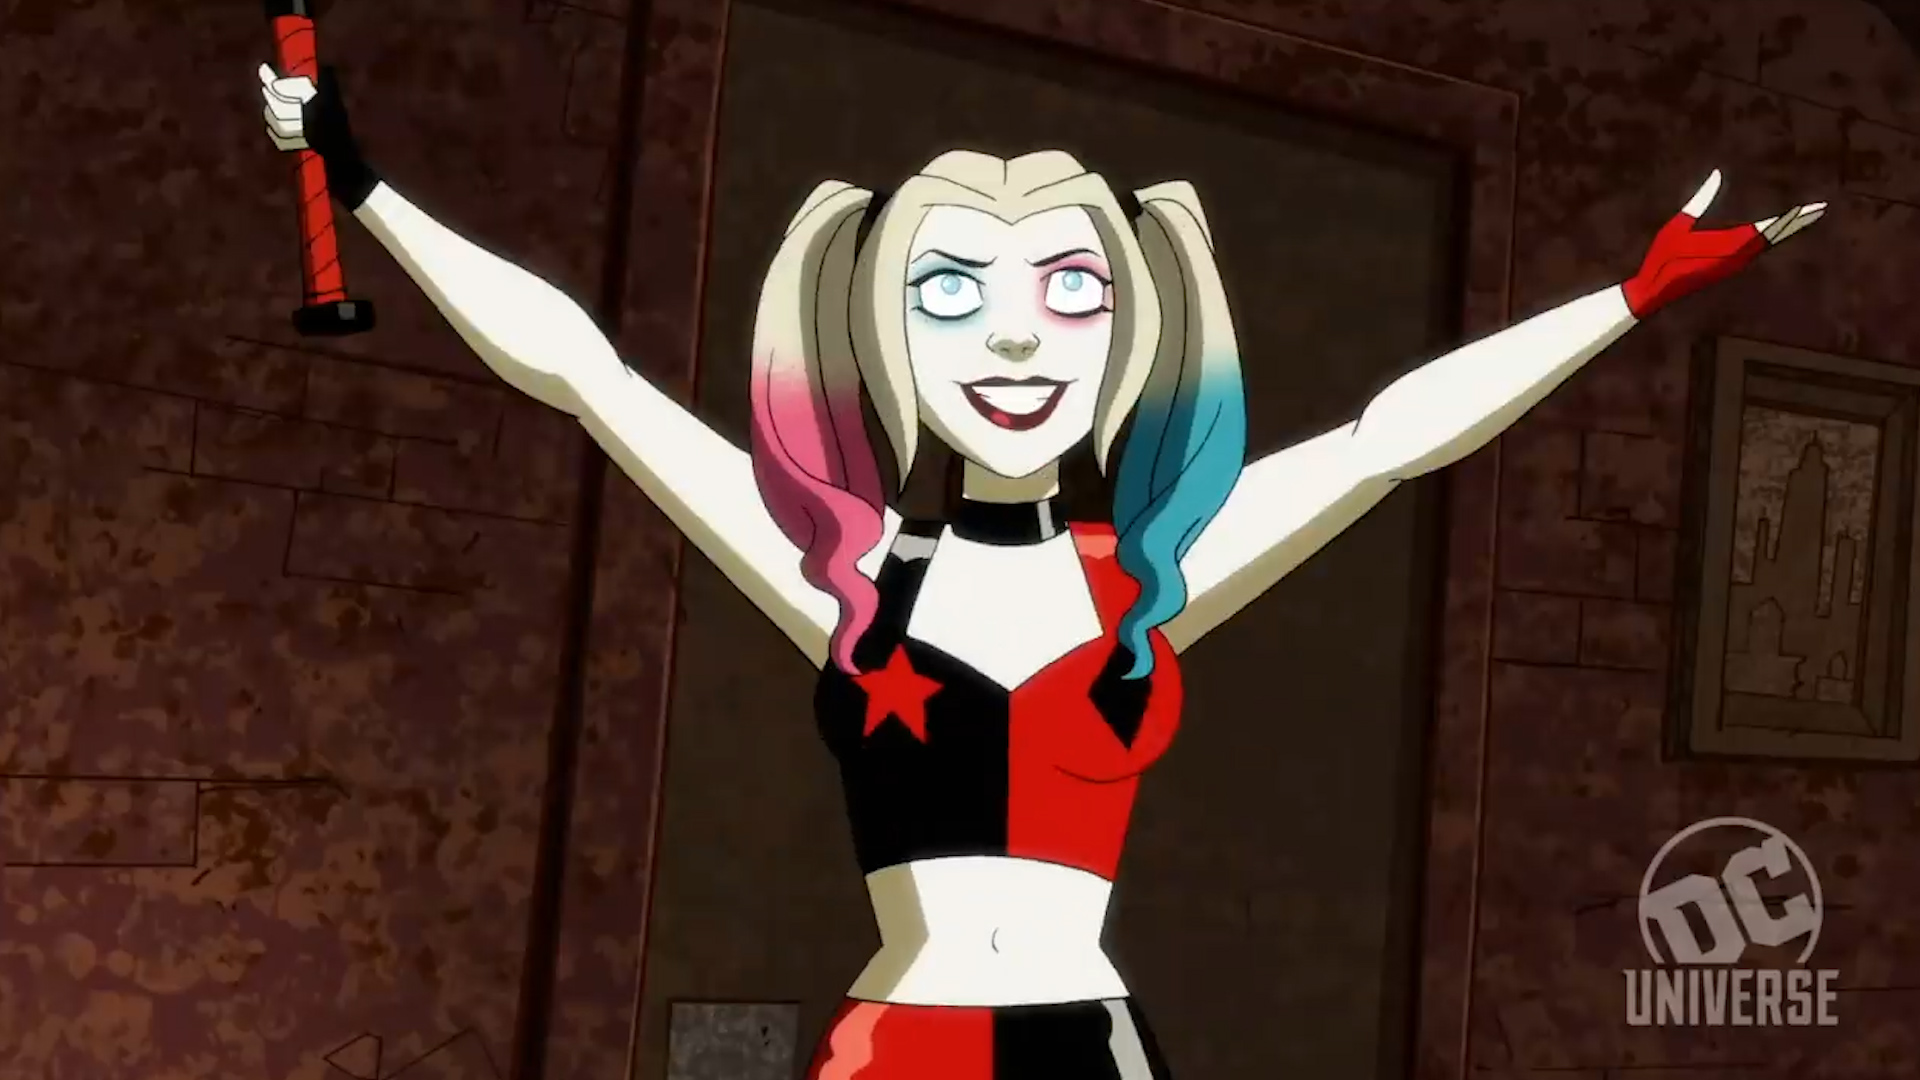 Harley Quinn Gets Her Own Animated Series Harley Quinn Series Wallpapers Mega Themes